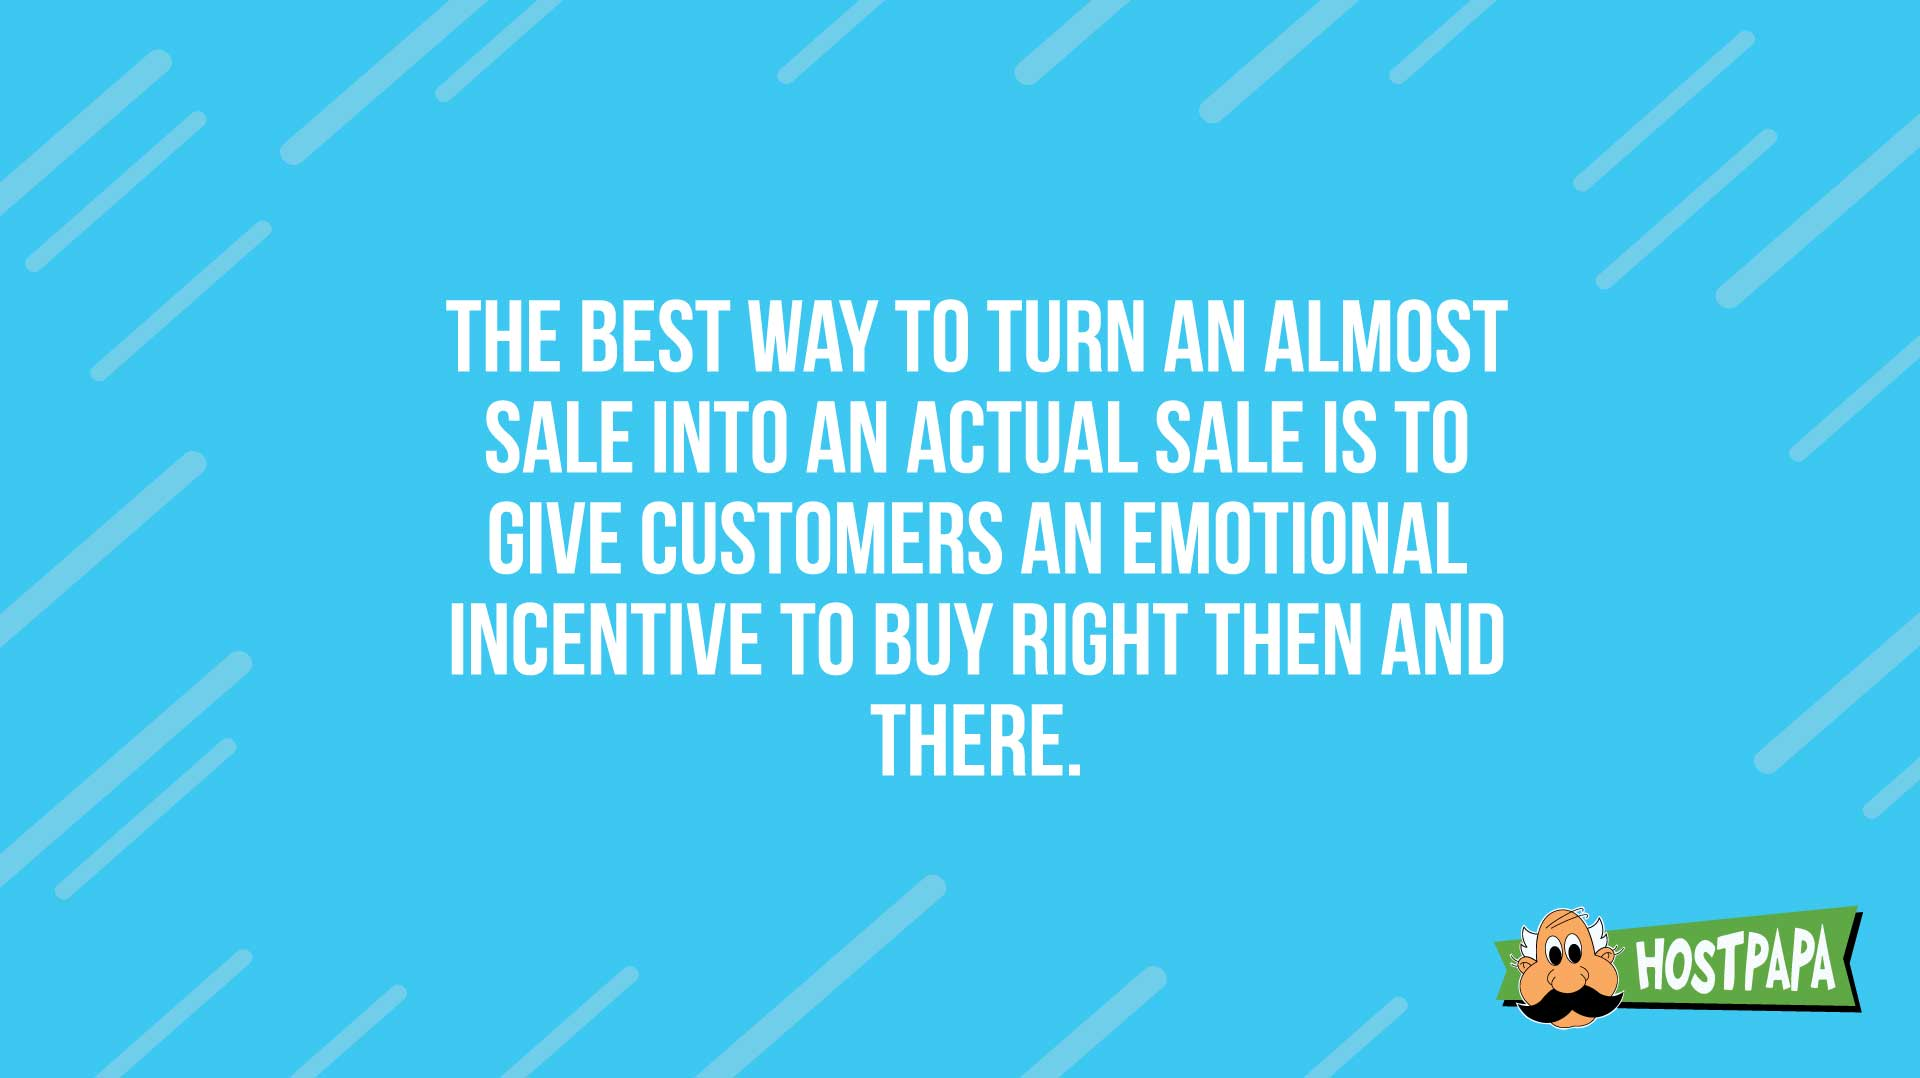 The best way to turn an almost sale into a sale is to give customers an emotional incentive